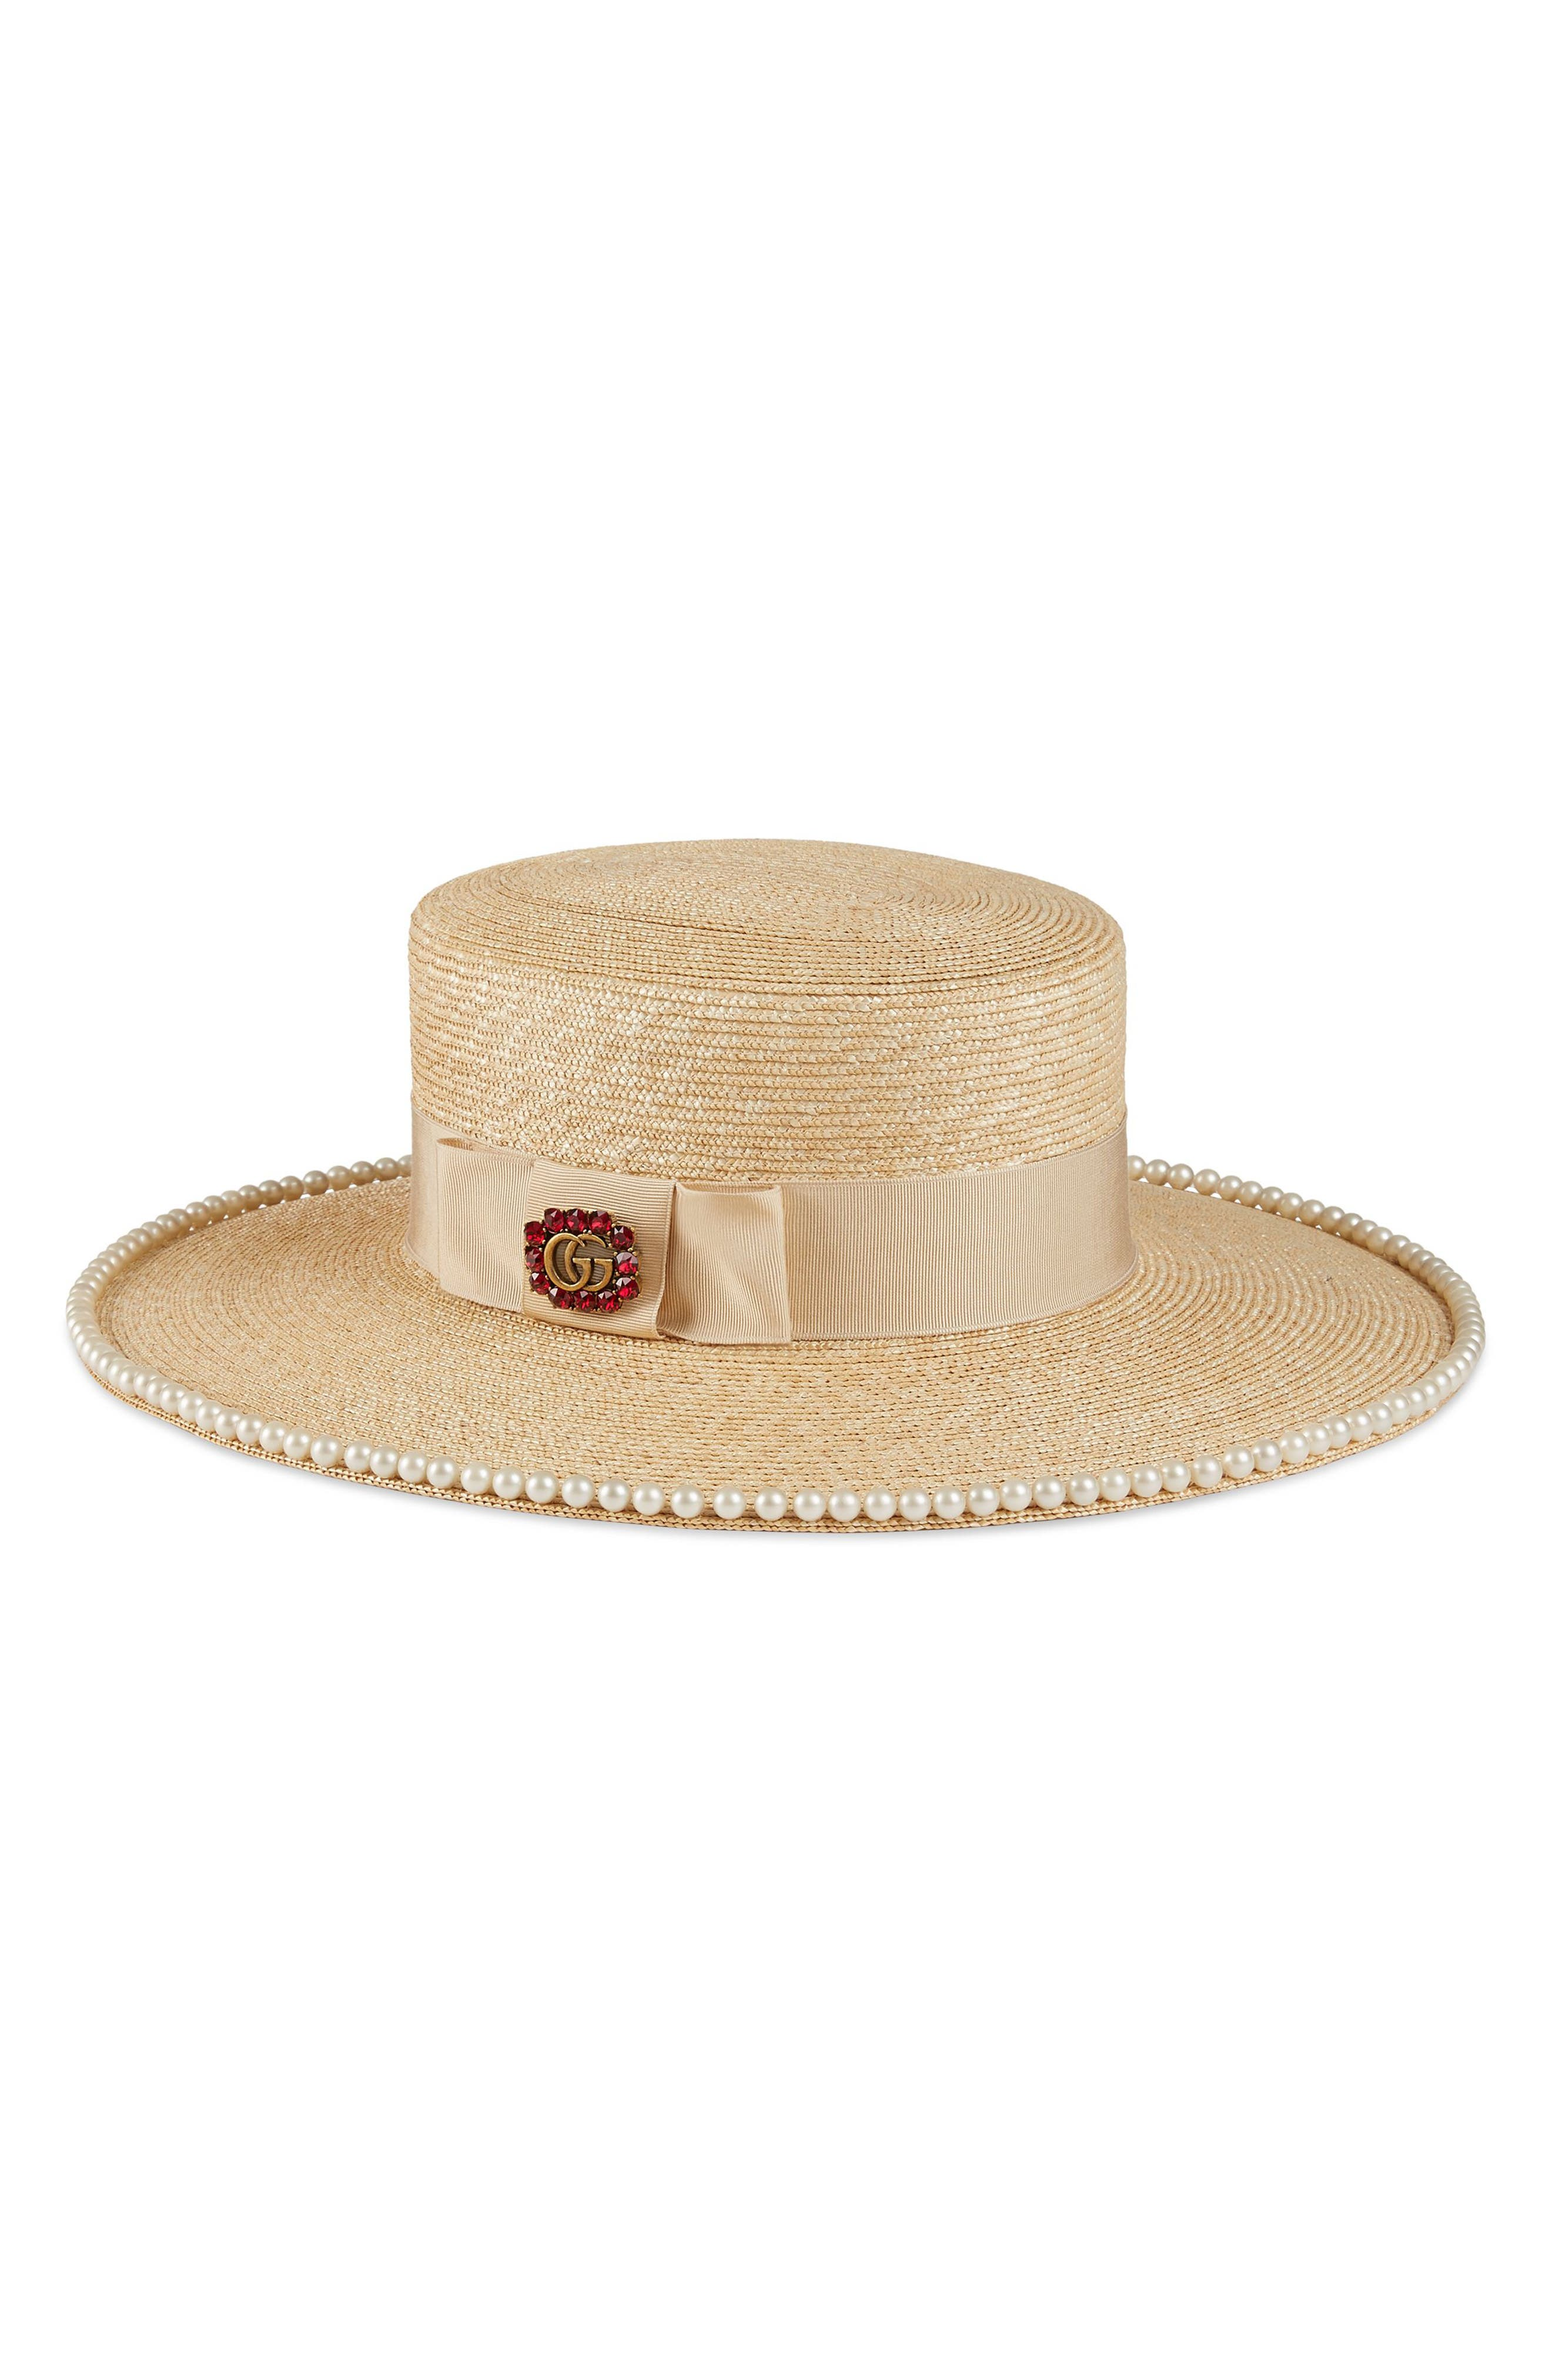 Notte Embellished Straw Hat,                             Main thumbnail 1, color,                             155